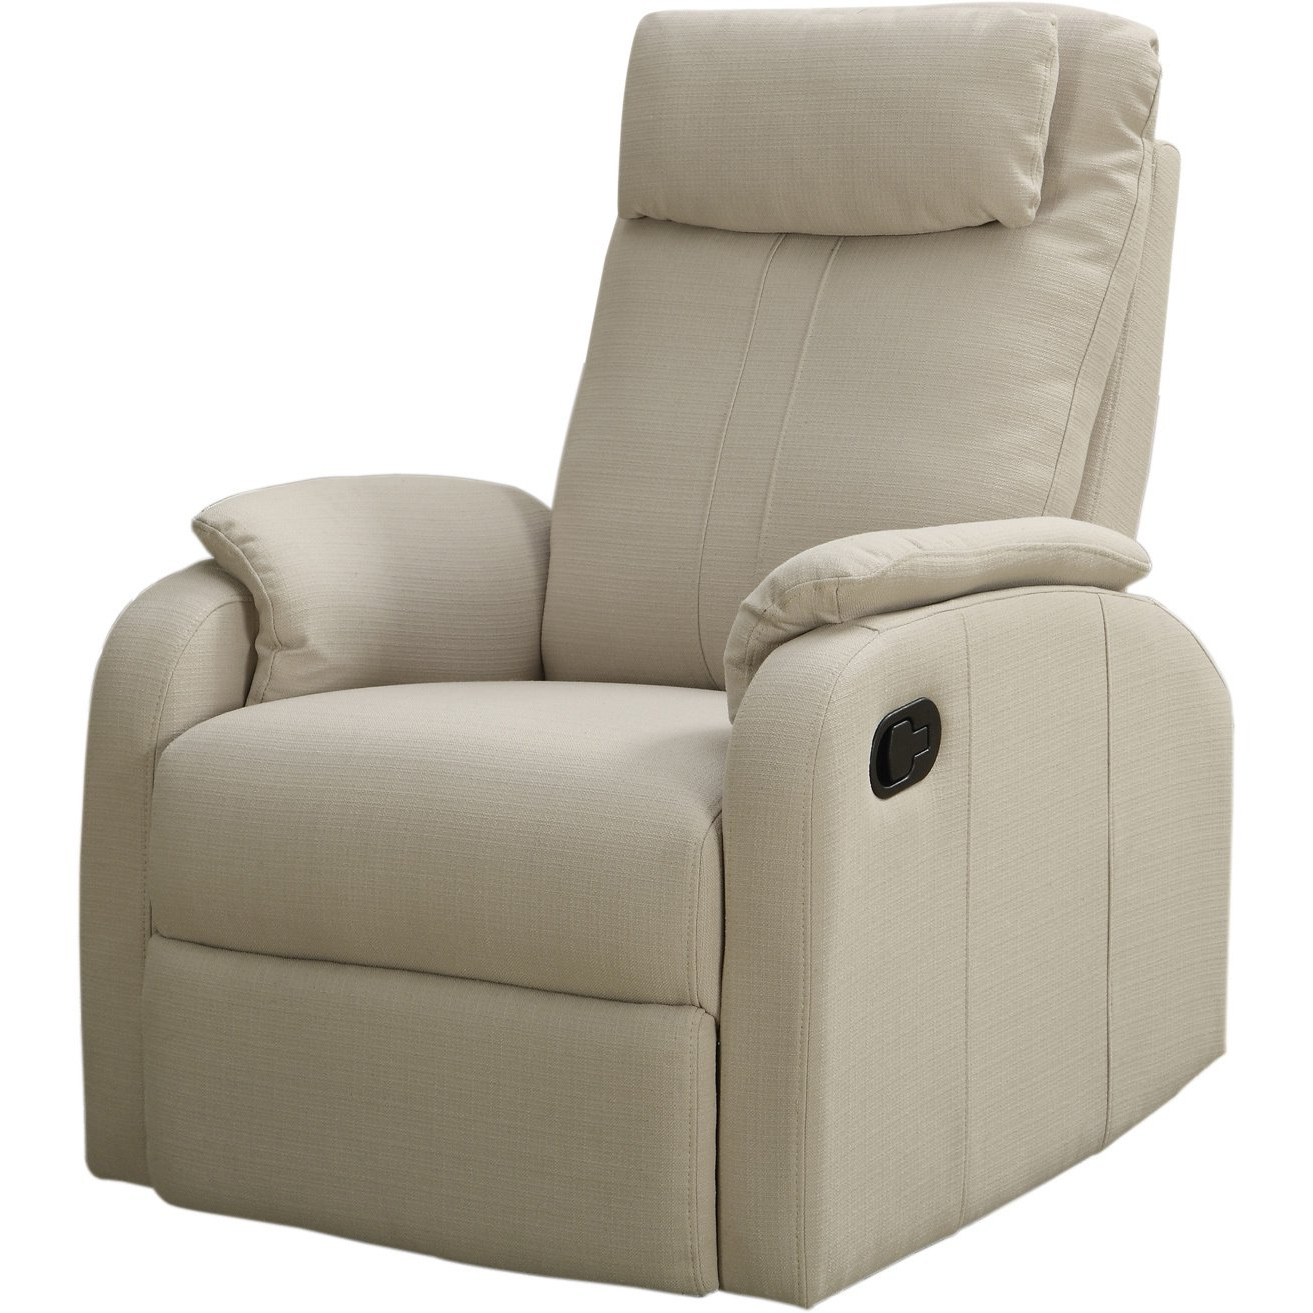 Shop Sand Linen Fabric Swivel Rocker Recliner – Free Shipping Today Intended For Most Popular Gannon Linen Power Swivel Recliners (Gallery 19 of 20)